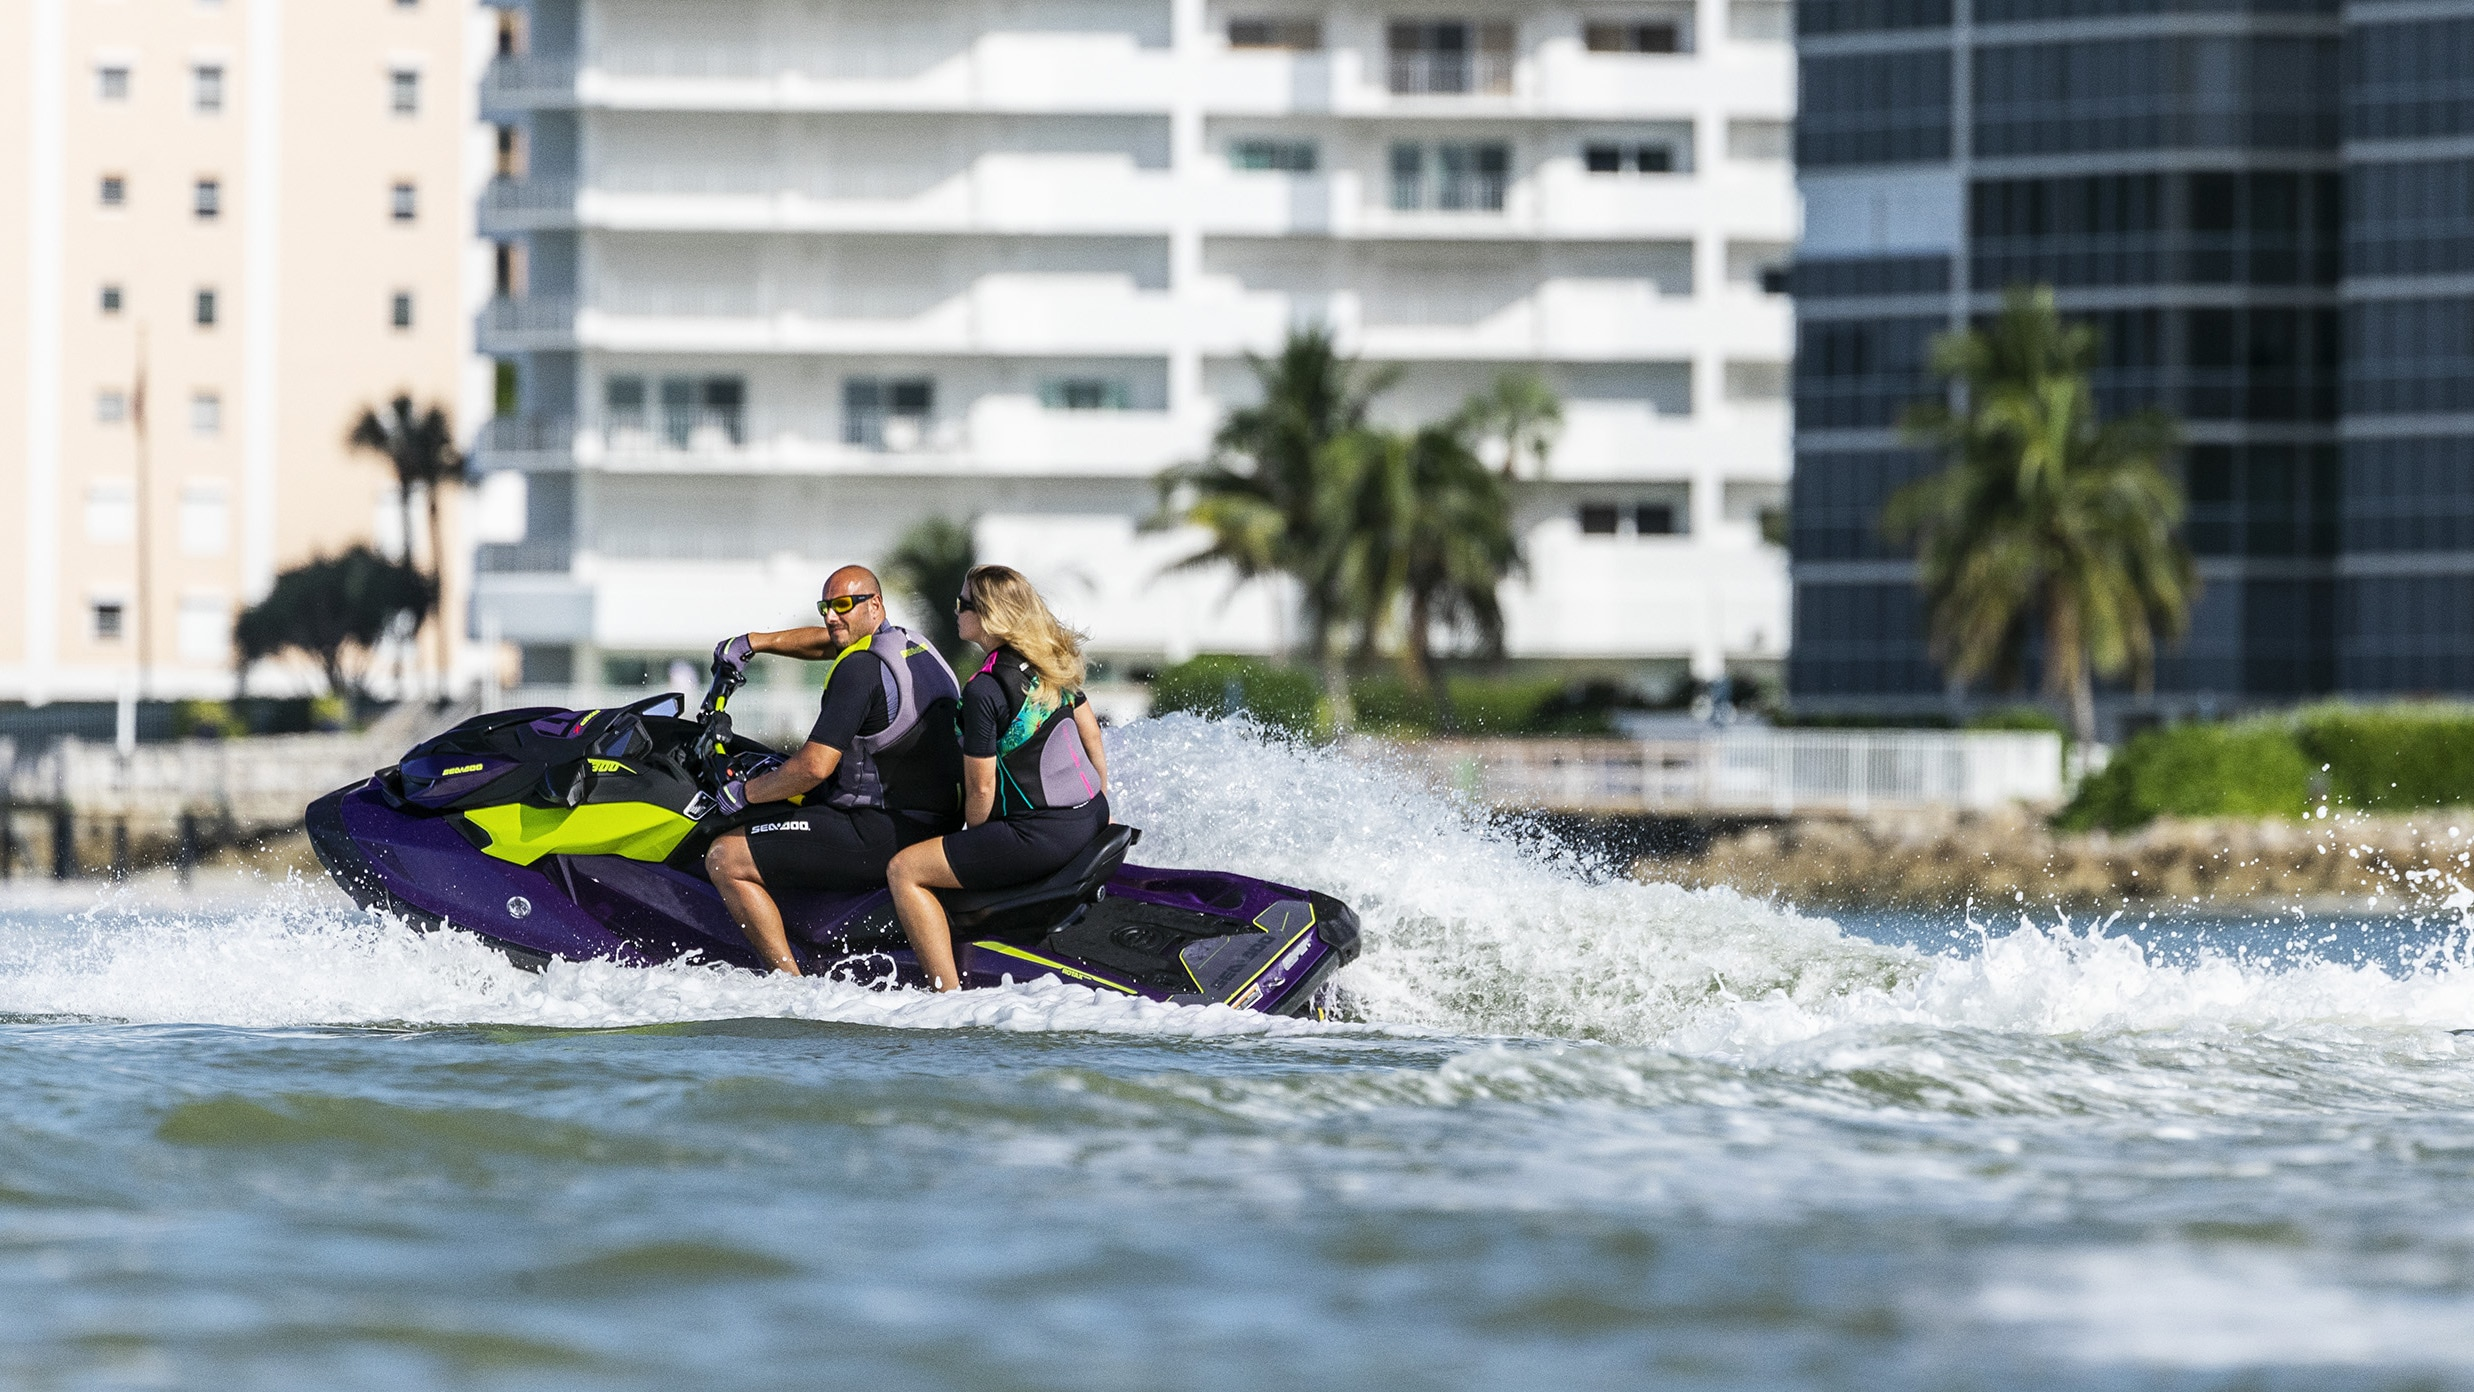 Couple carving with a Sea-Doo Watercraft